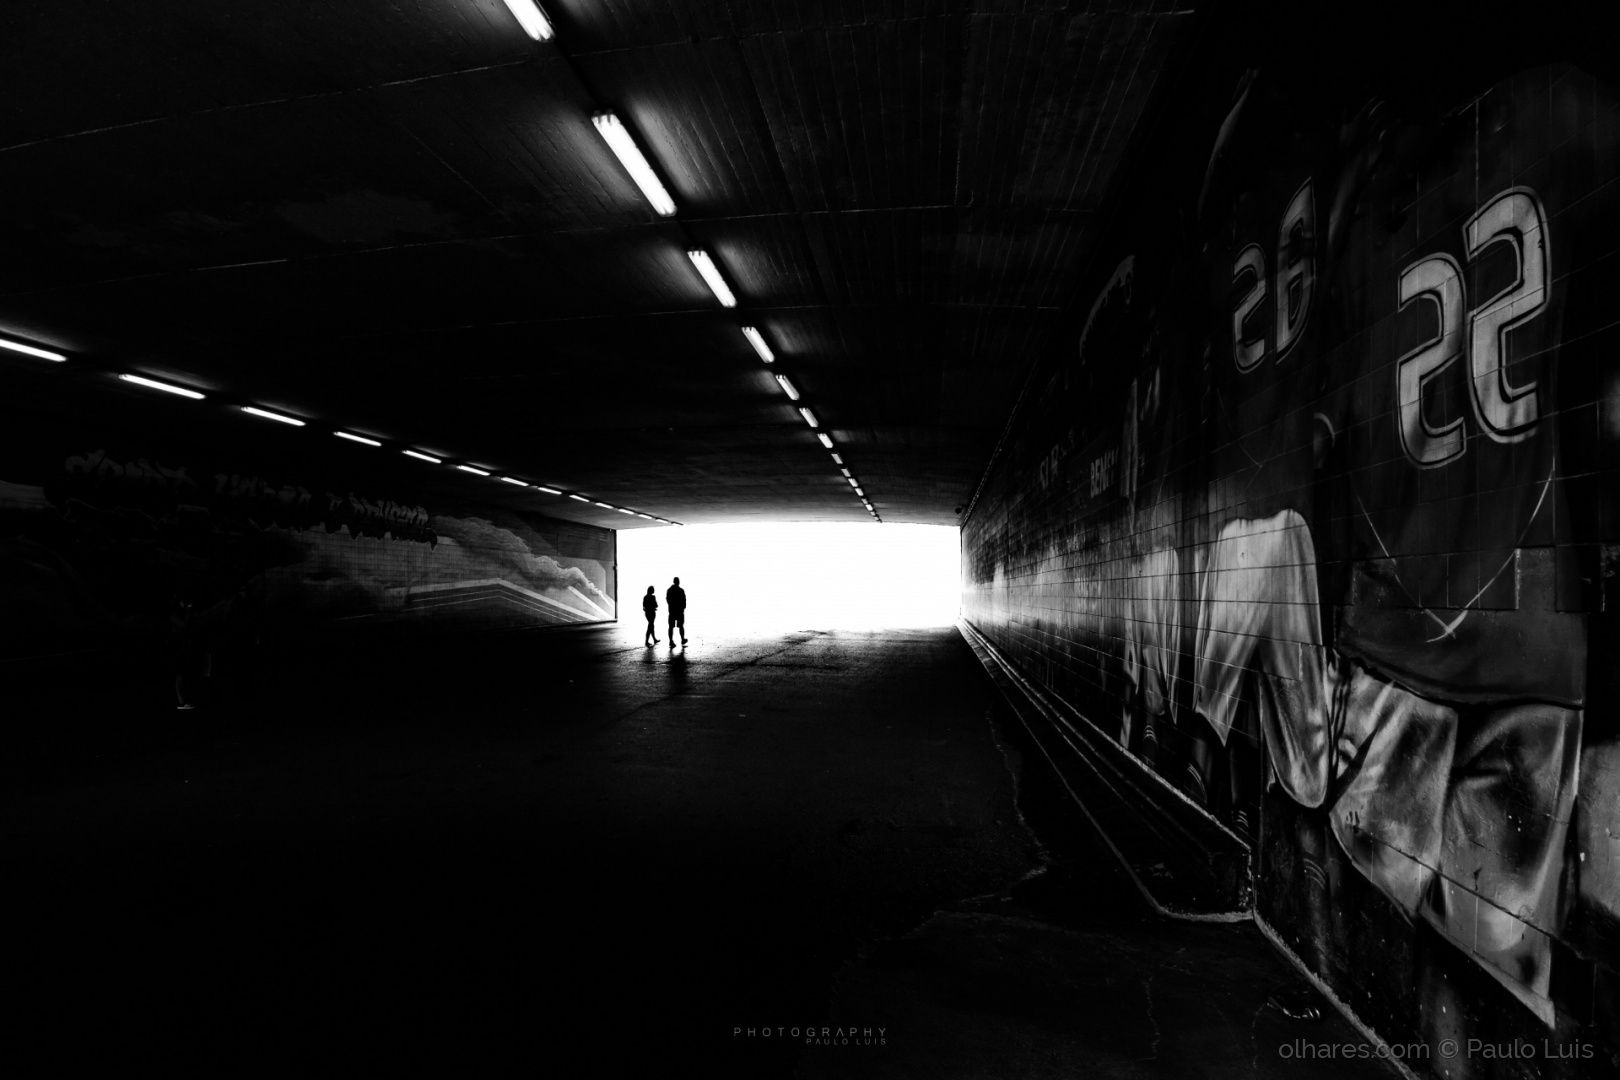 © Paulo Luis - Passage to the light